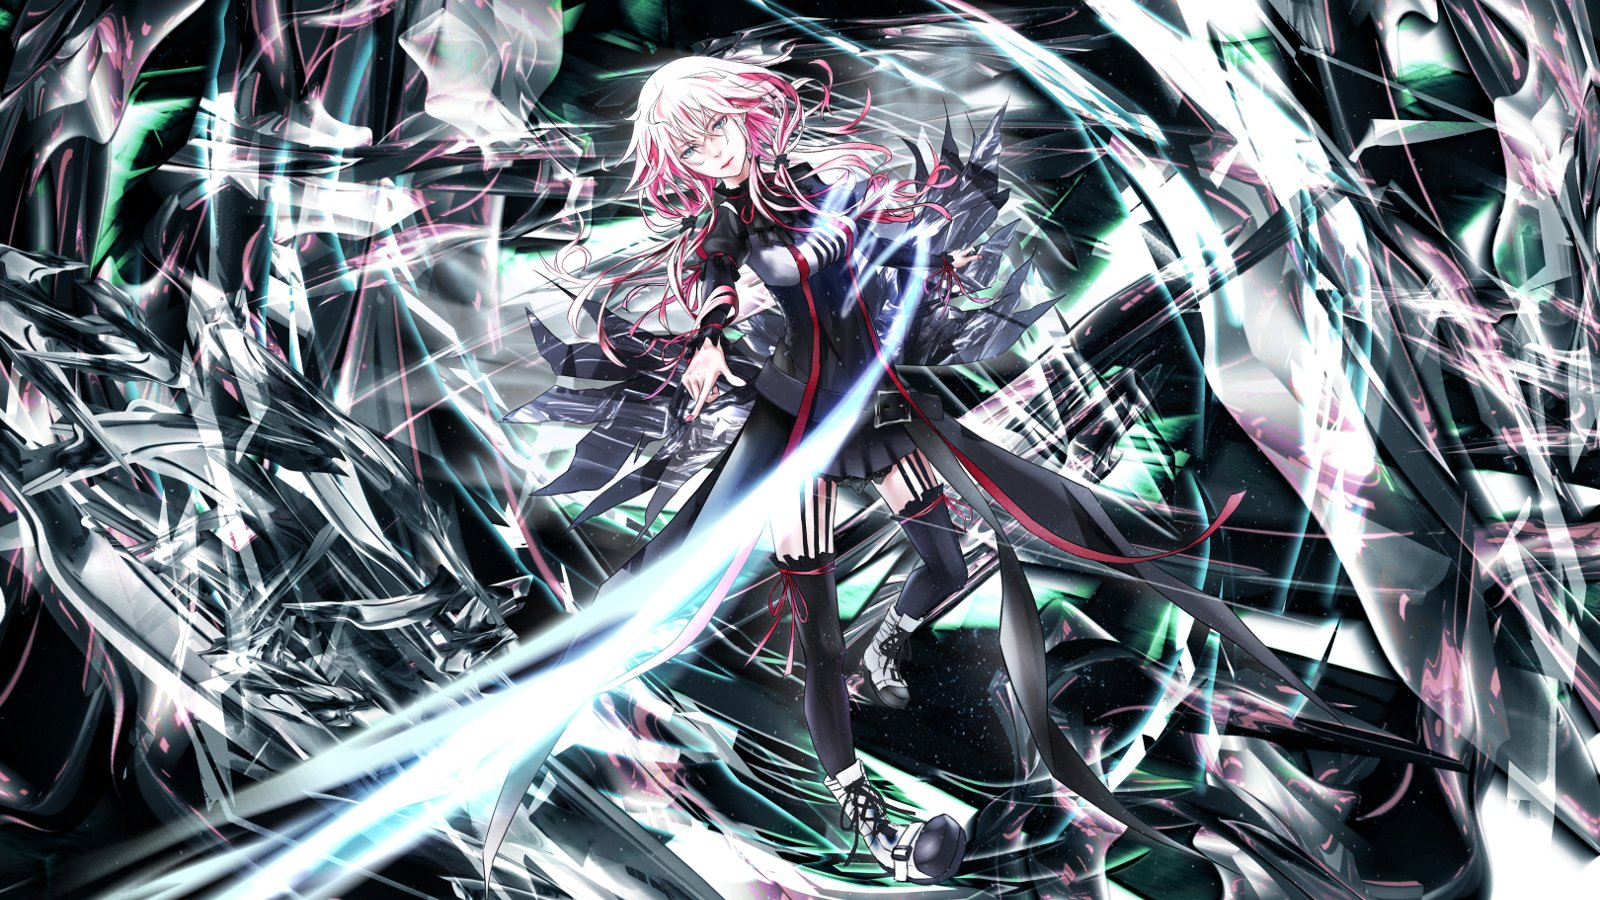 Guilty Crown Wallpaper Inori: Guilty Crown Wallpaper And Background Image